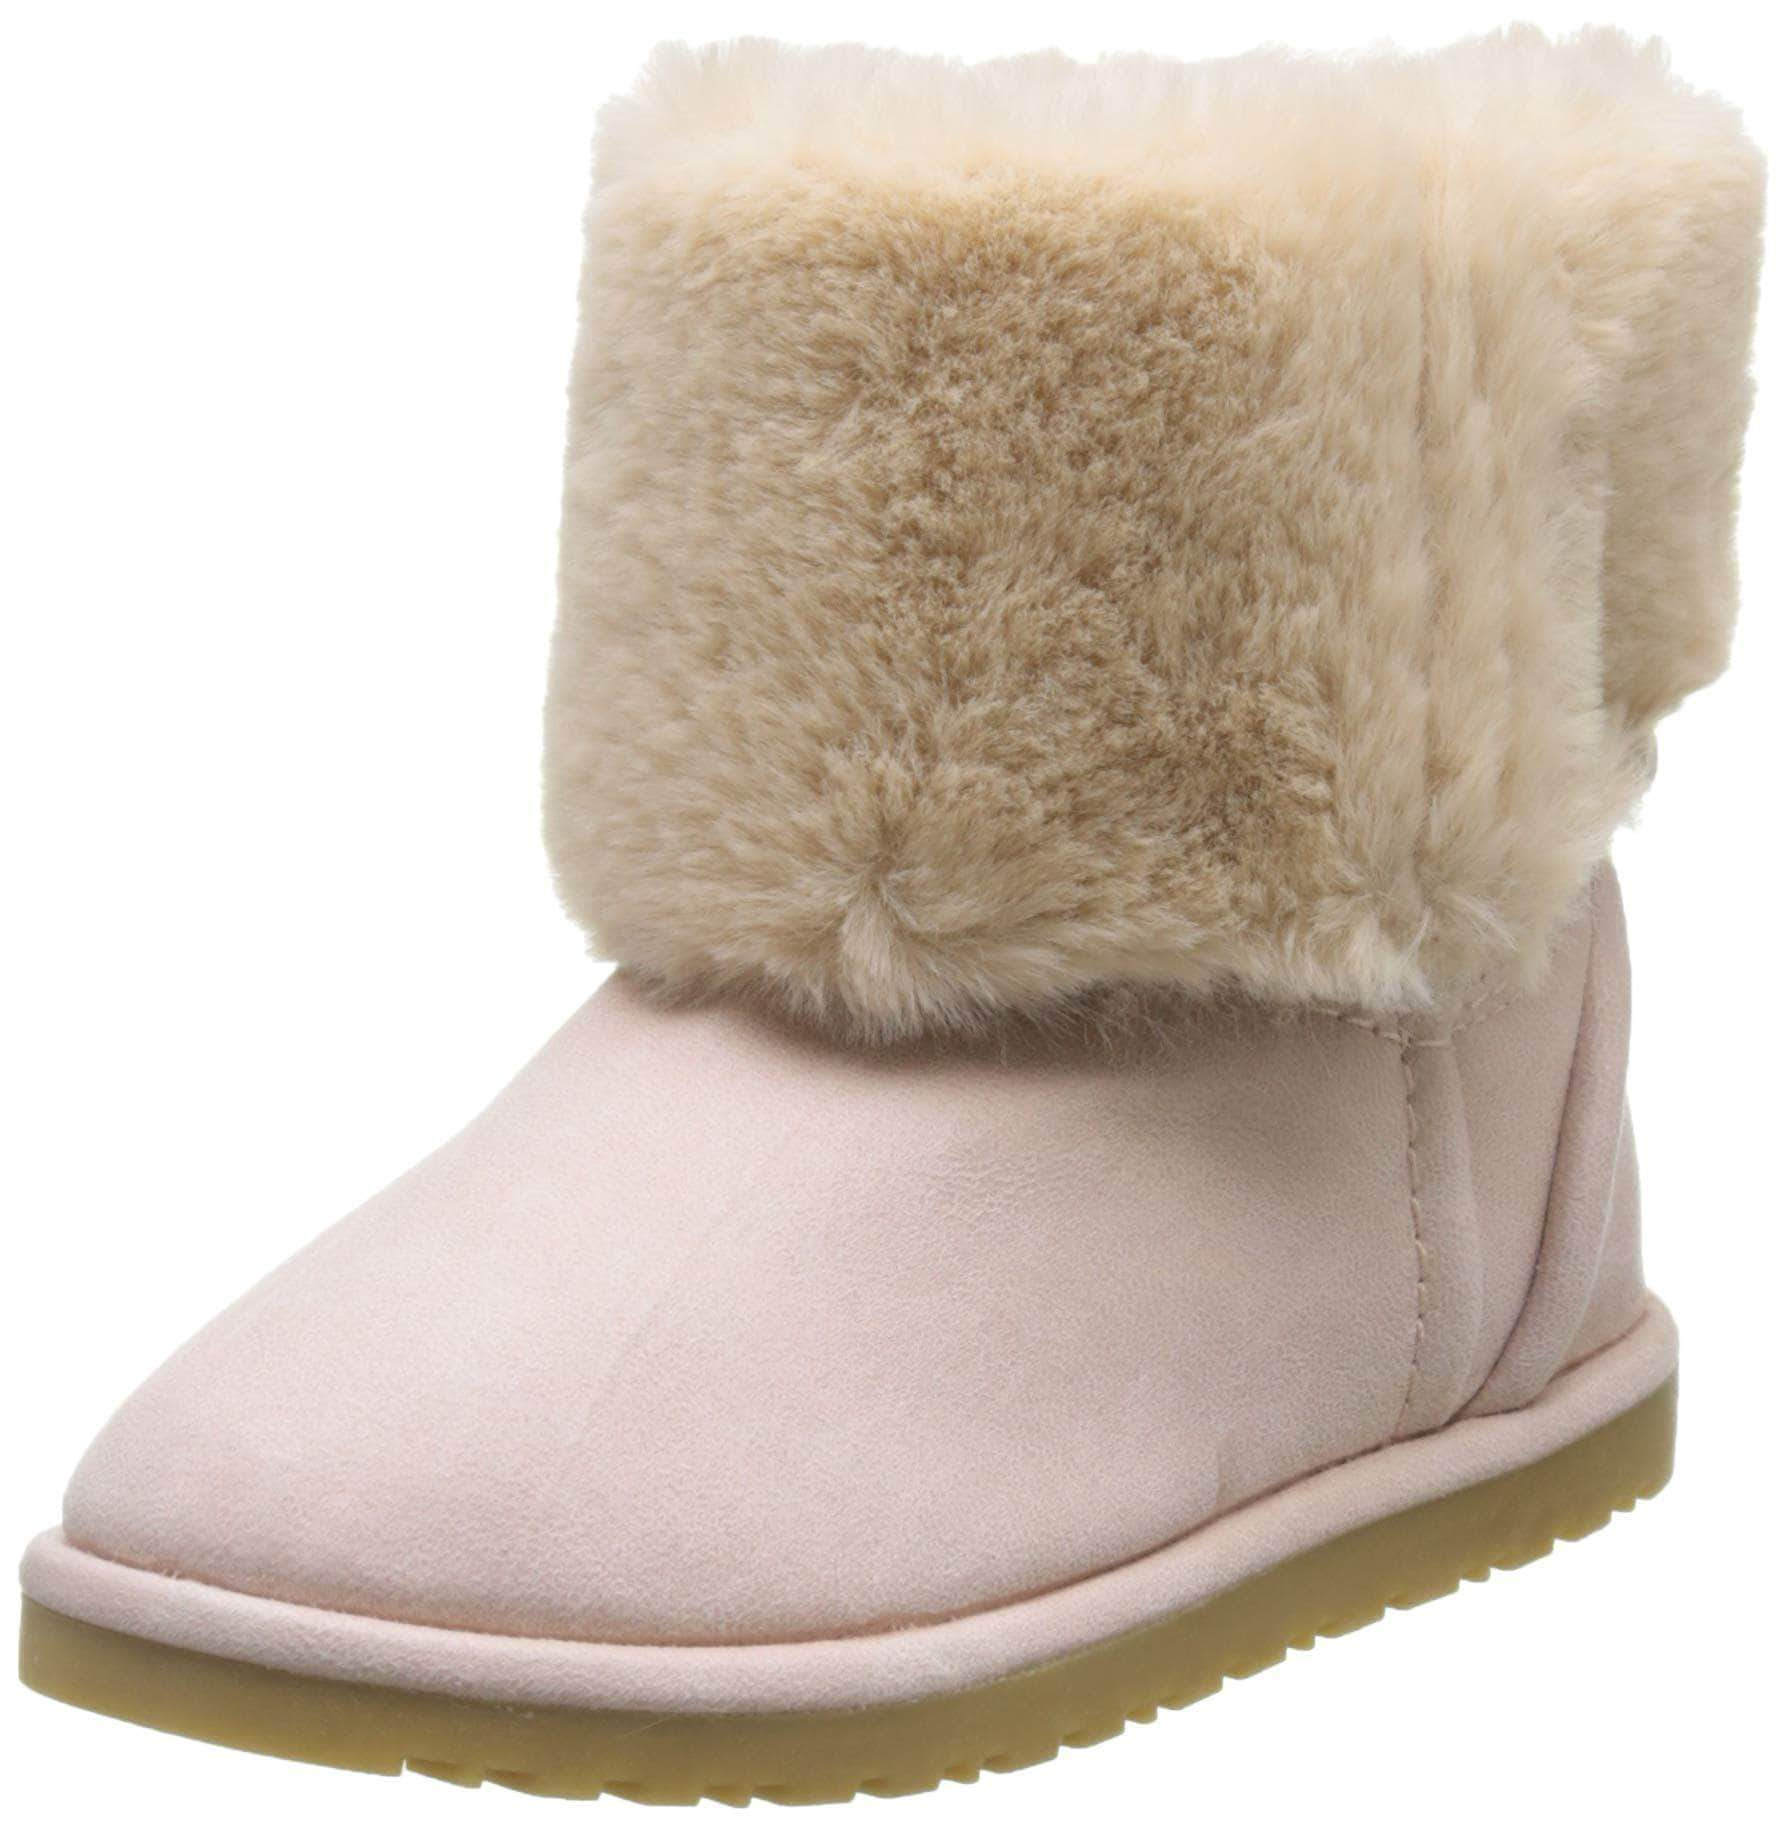 Amazon Zippy Botas Slouch ZY Niña, Niñas, Rosa (Crystal Rose 12-1708 3111), 29 EU